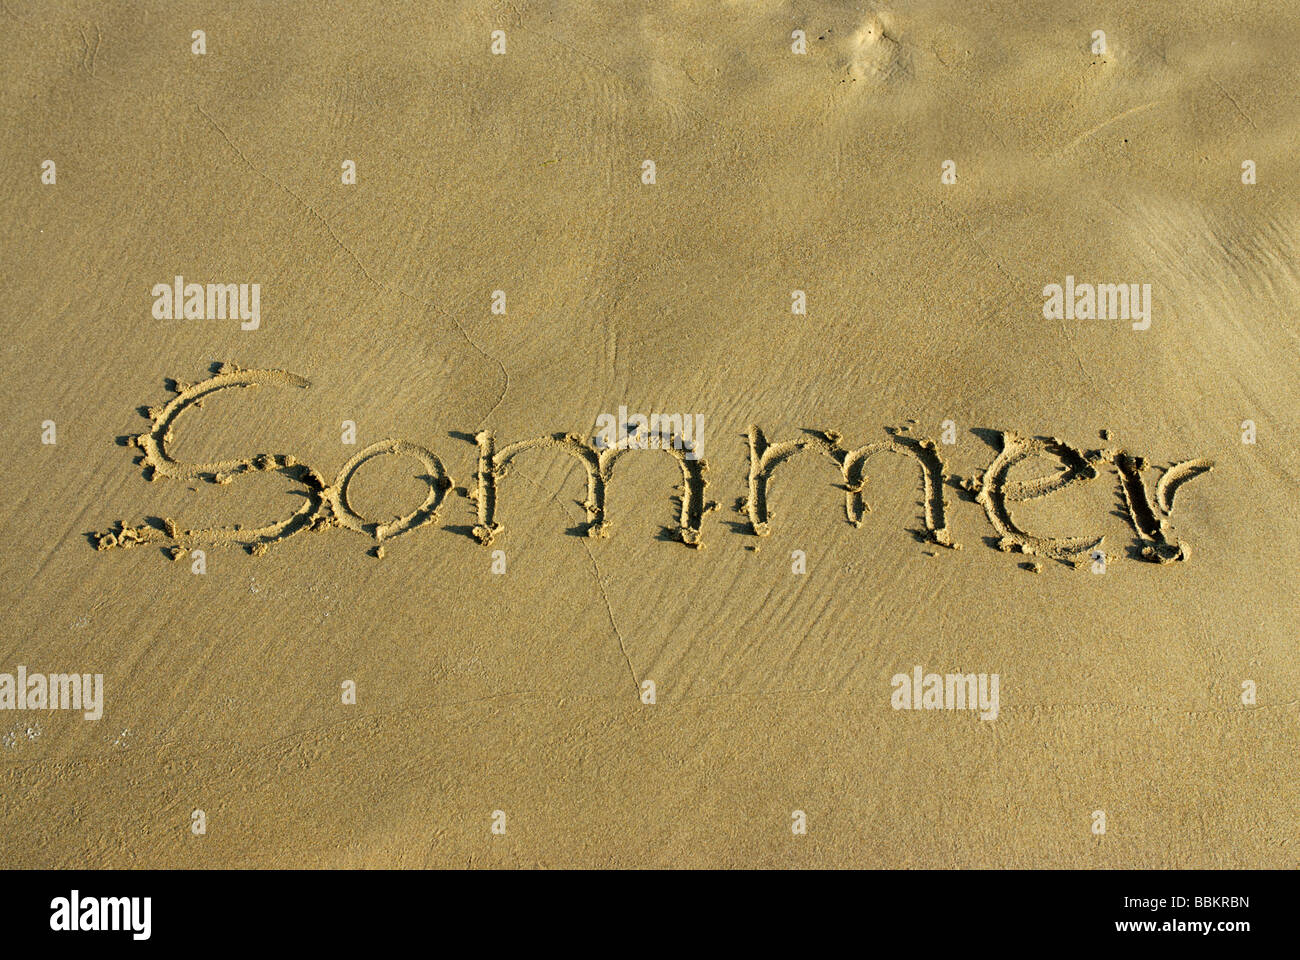 'Sommer', summer written in the sand - Stock Image